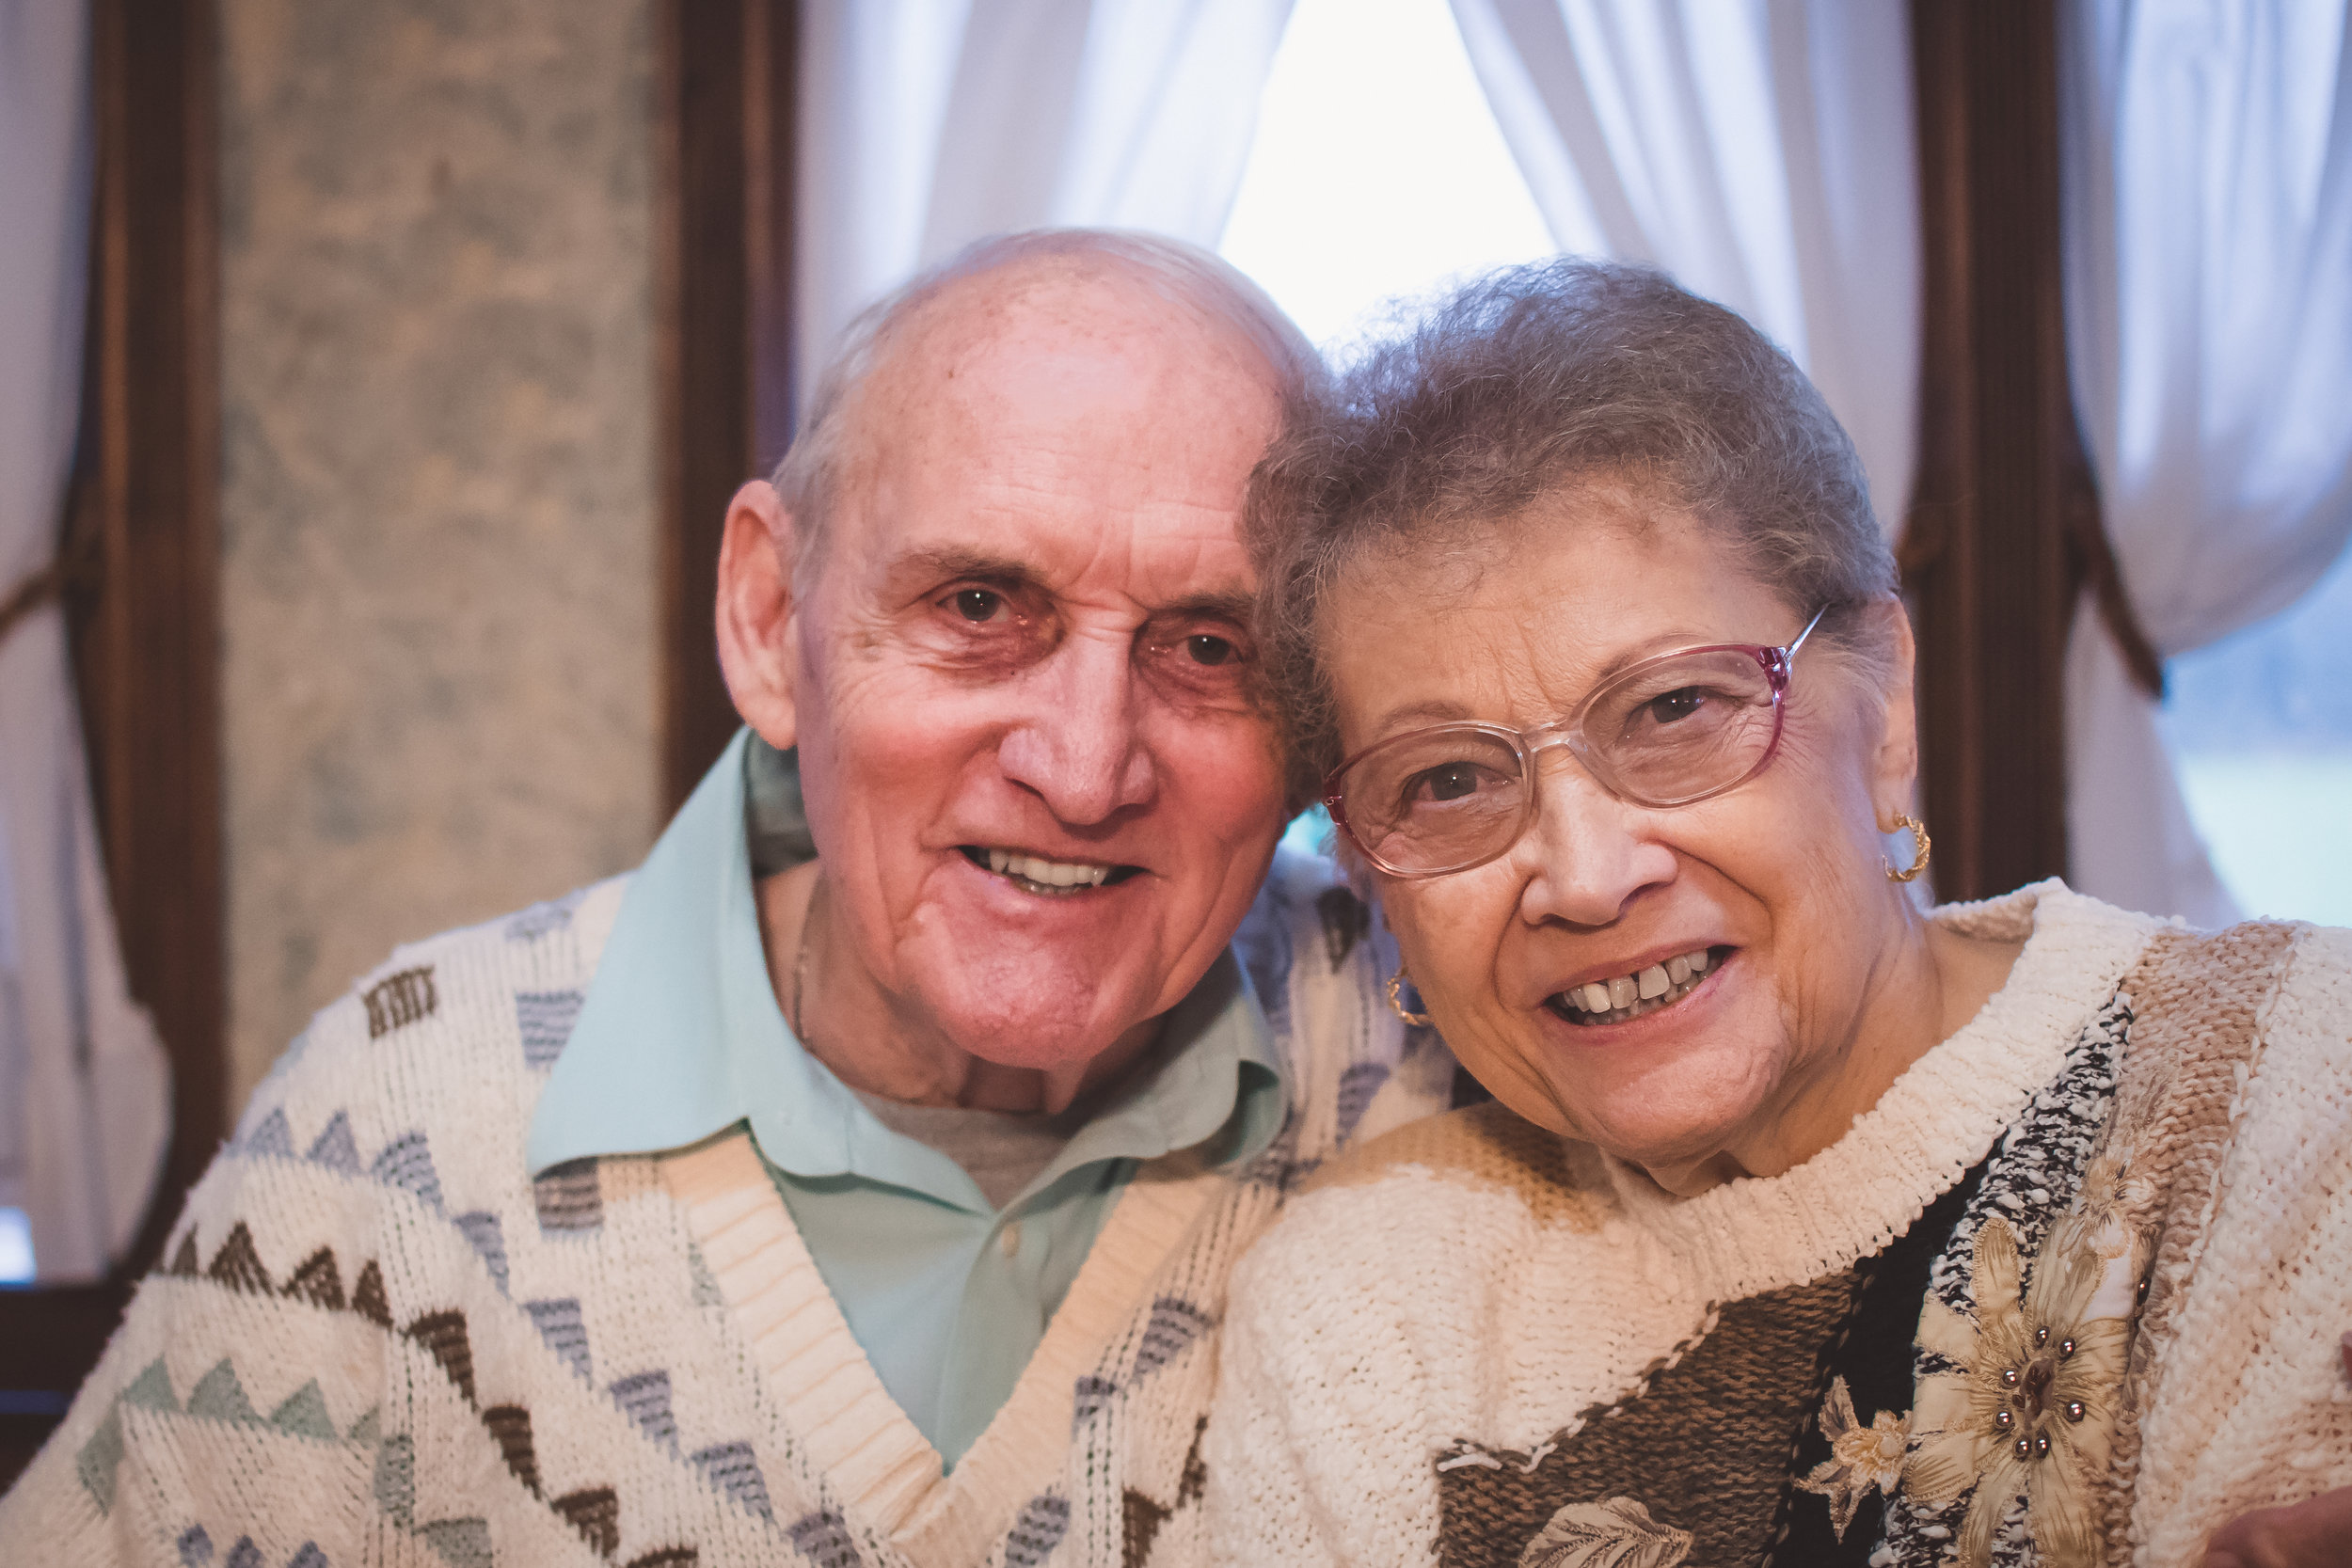 My Grandma and Grandpa....the lady who keeps all the memories, and the man who loves her!